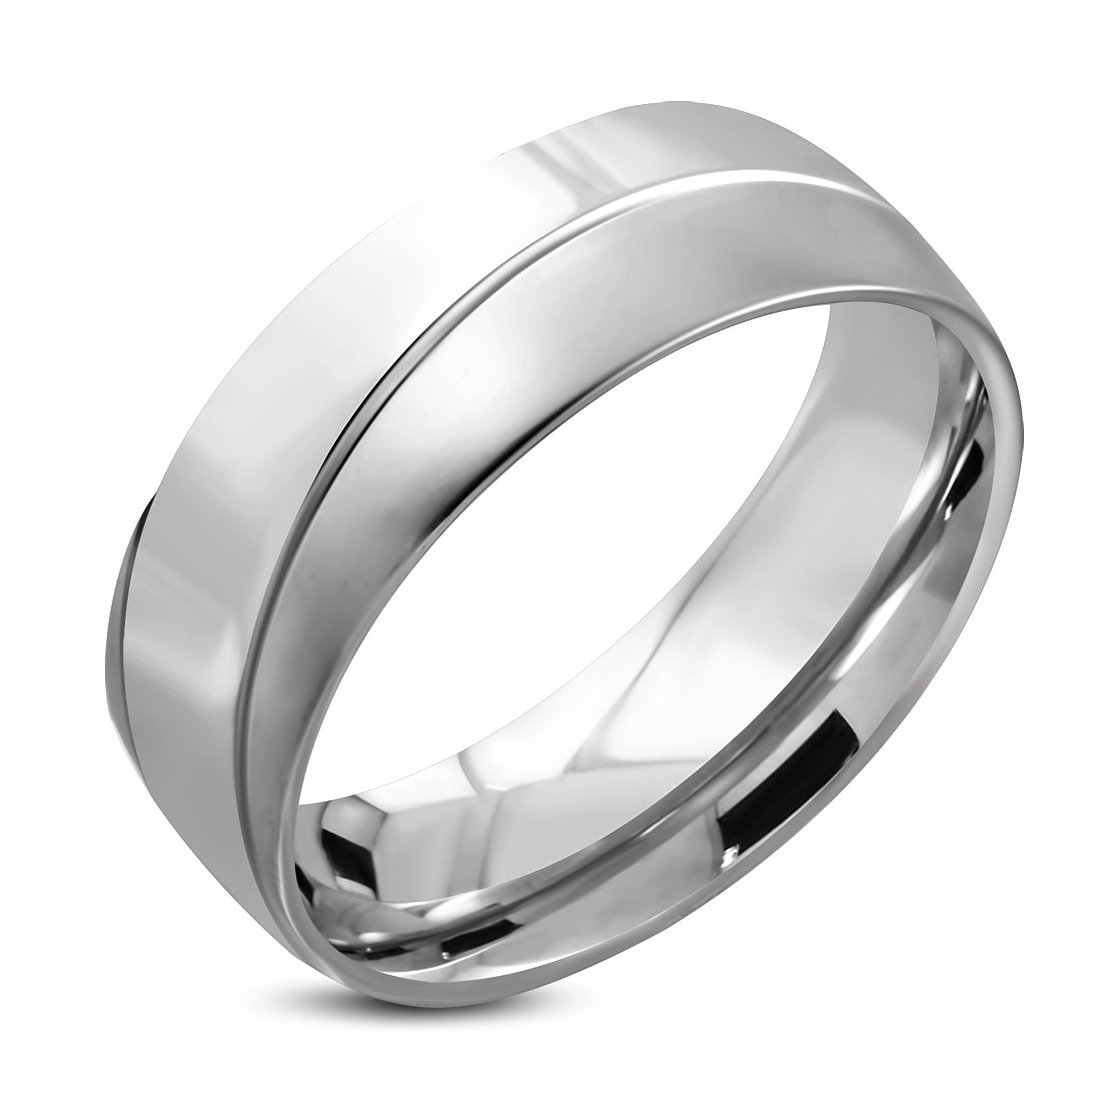 Stainless Steel Diagonal Striped Comfort Fit Half-Round Wedding Band Ring